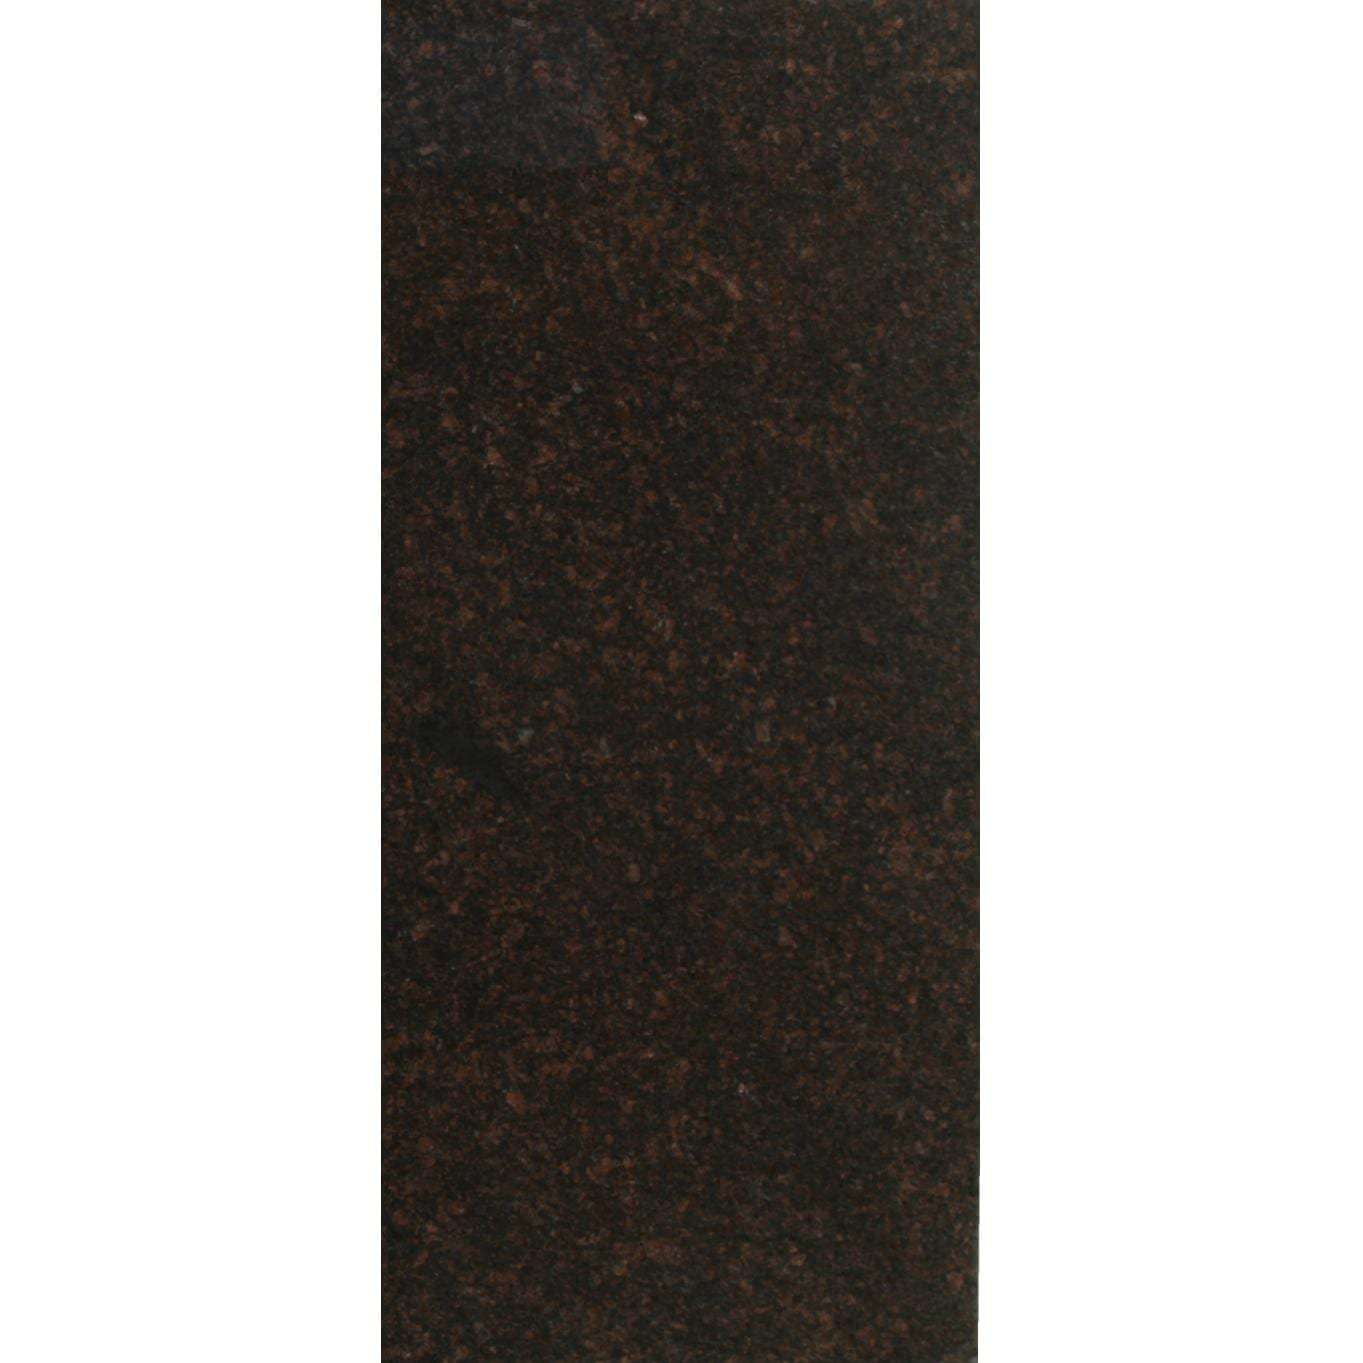 Image for Granite 23191-2: Tan Brown